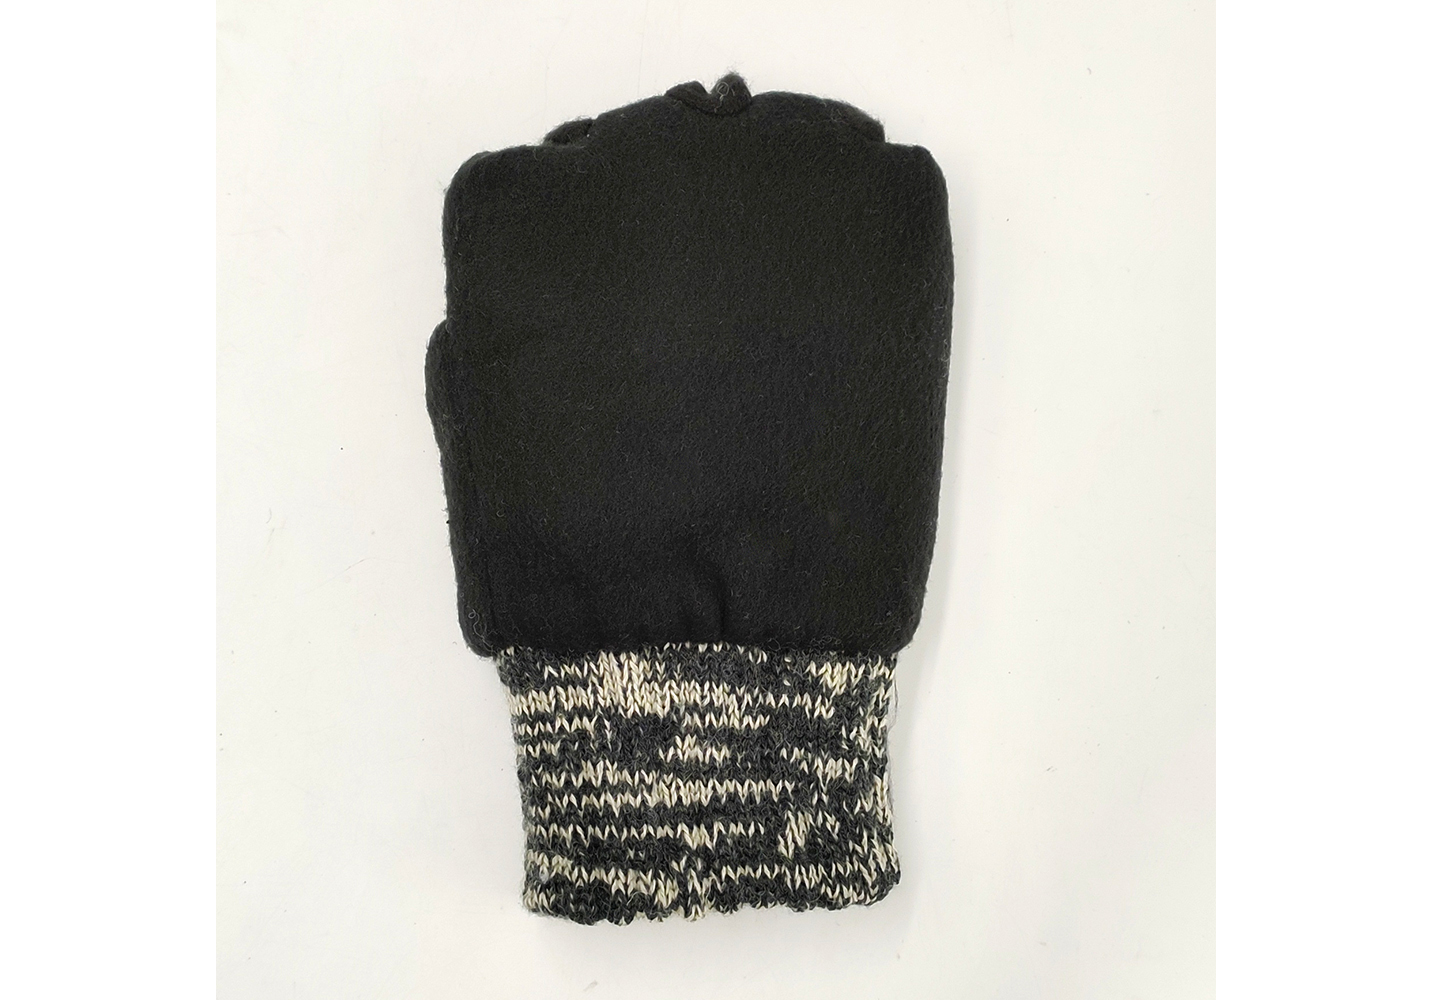 3M Thinsulate Lining Wool/Acrylic Double Knit Gloves with Leather on Plam/IWG-030